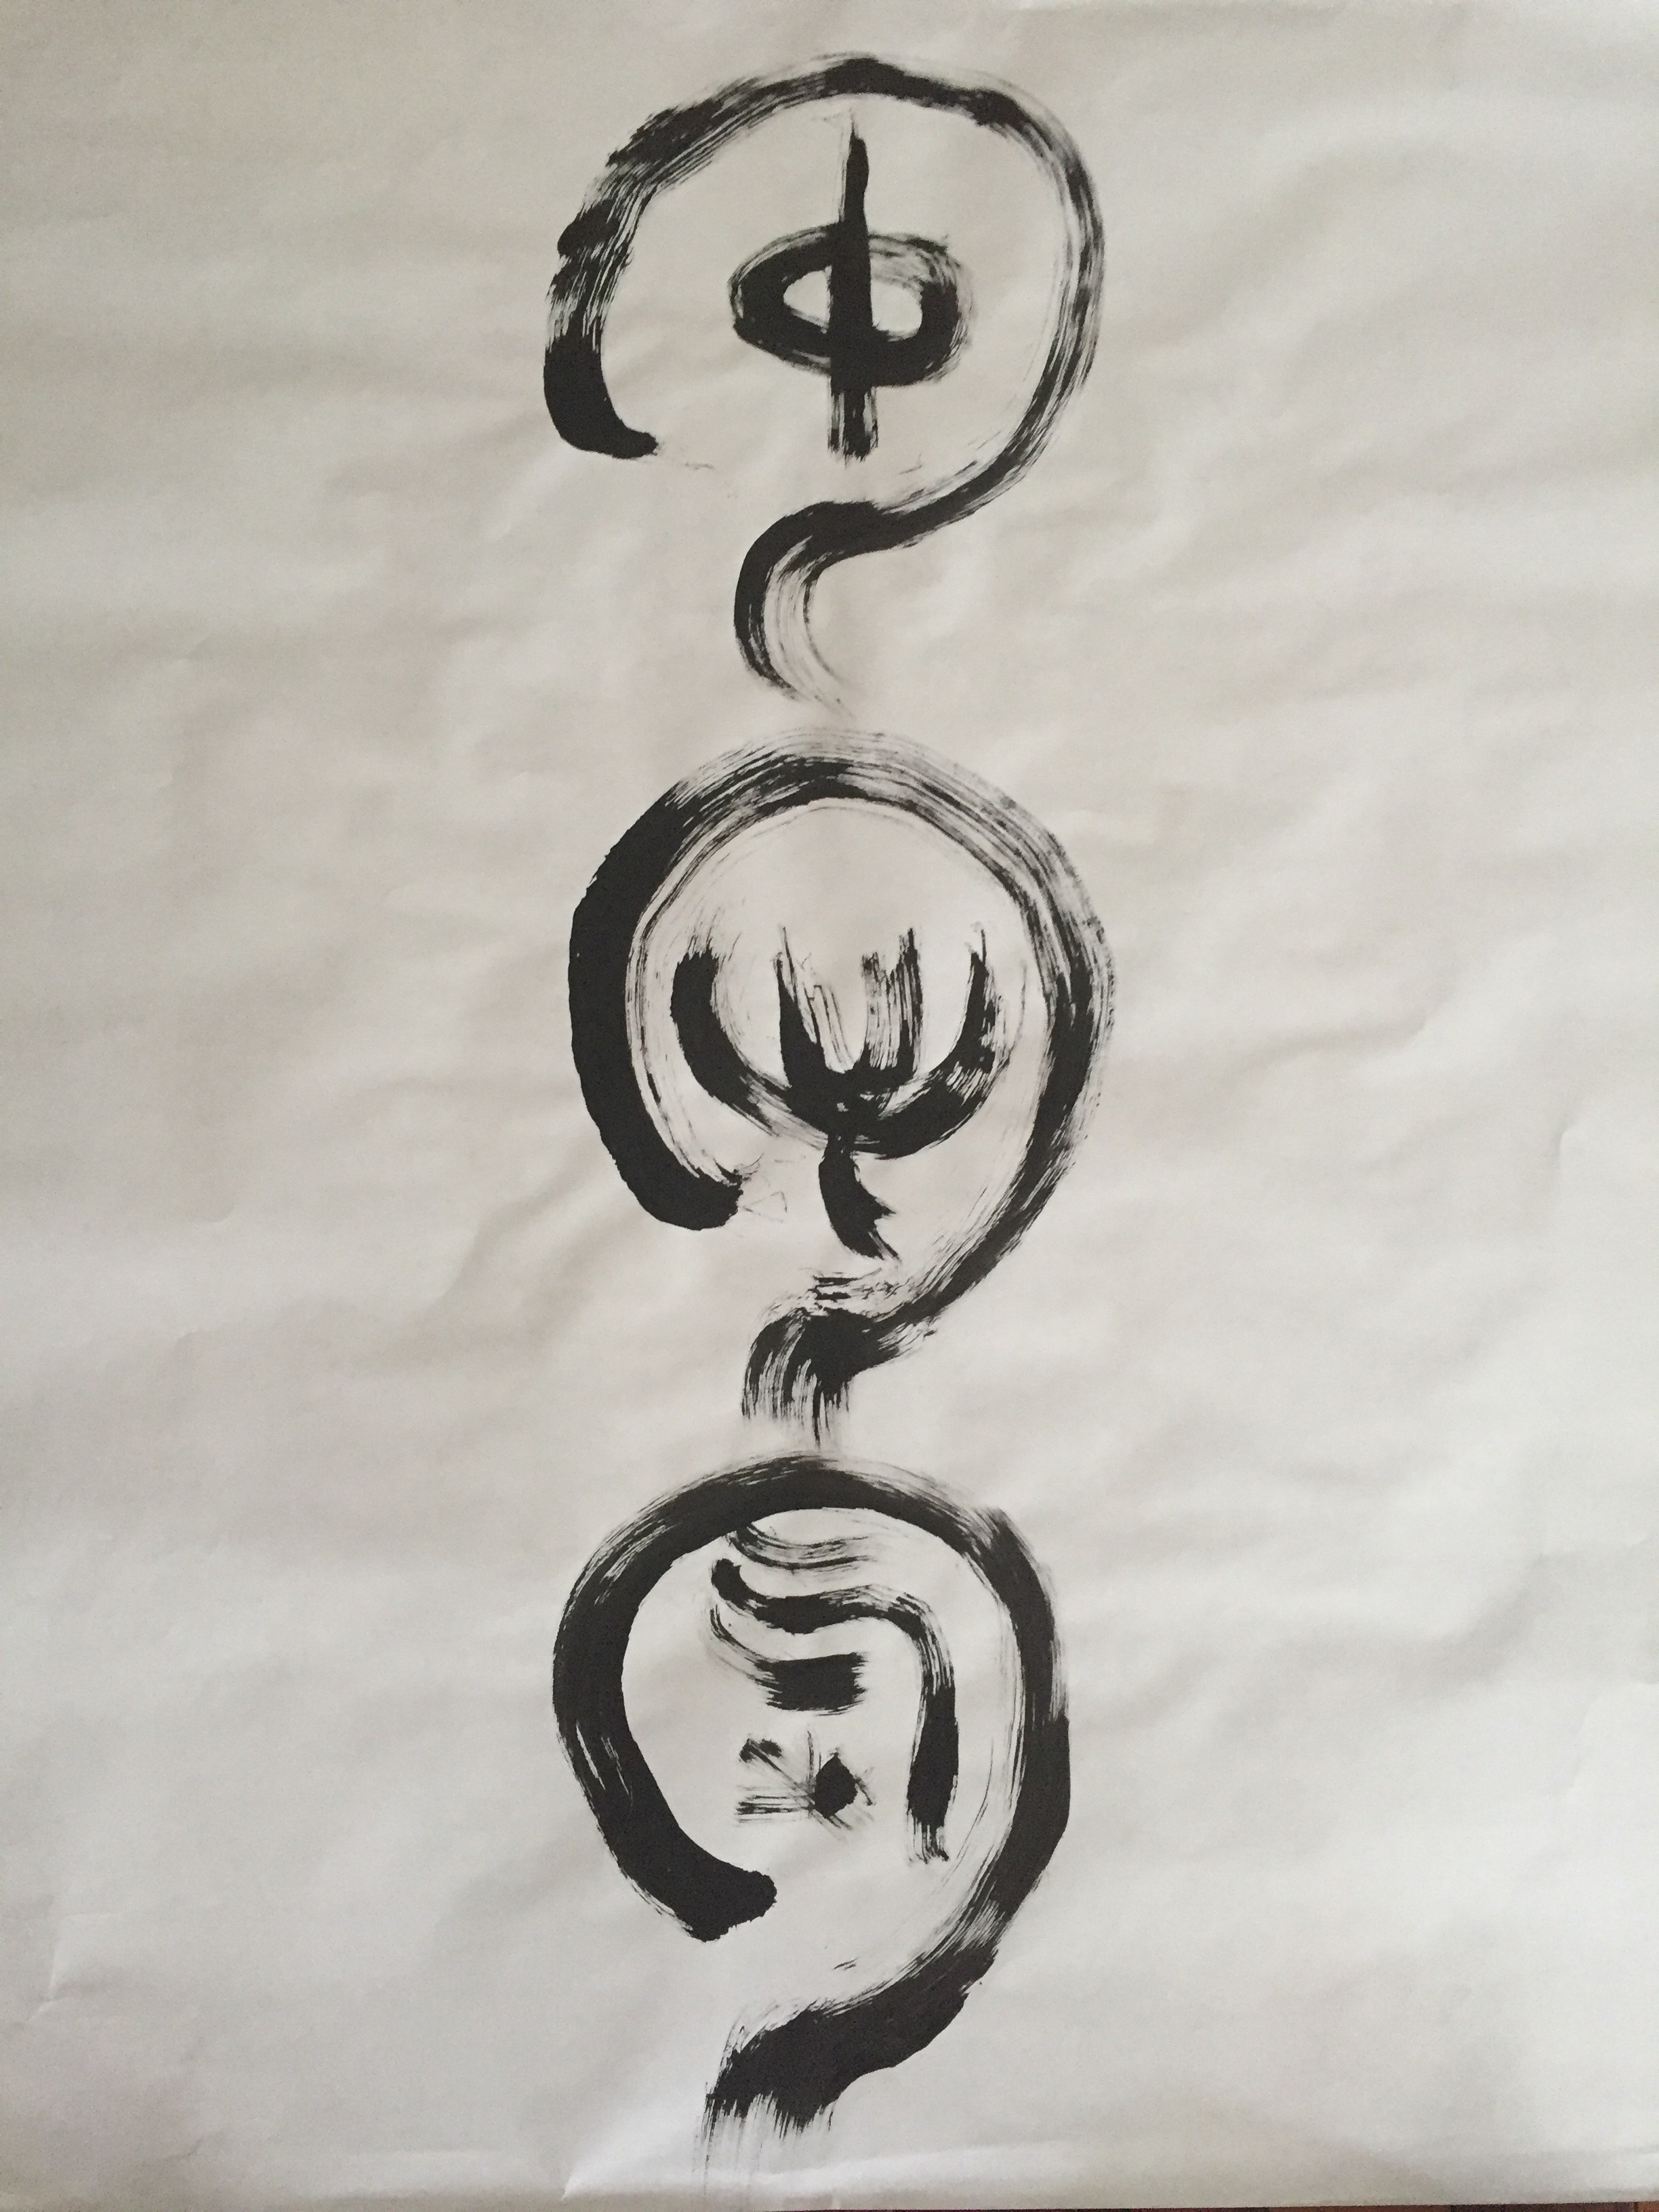 San Bao: Three wombs- This was a spontaneous set of invented symbols created by Stephen Cowan during our Chong Immersion representing and channeling Dan's teaching….the upper bao (womb) encircles the symbol zhong, meaning central or centered, the middle bao (womb) contains the symbol, xin meaning heart and the lower bao (womb) contains the symbol qi. The 3 wombs is at the heart of and permeates our understanding and practice of NSEV meditation and cultivation.